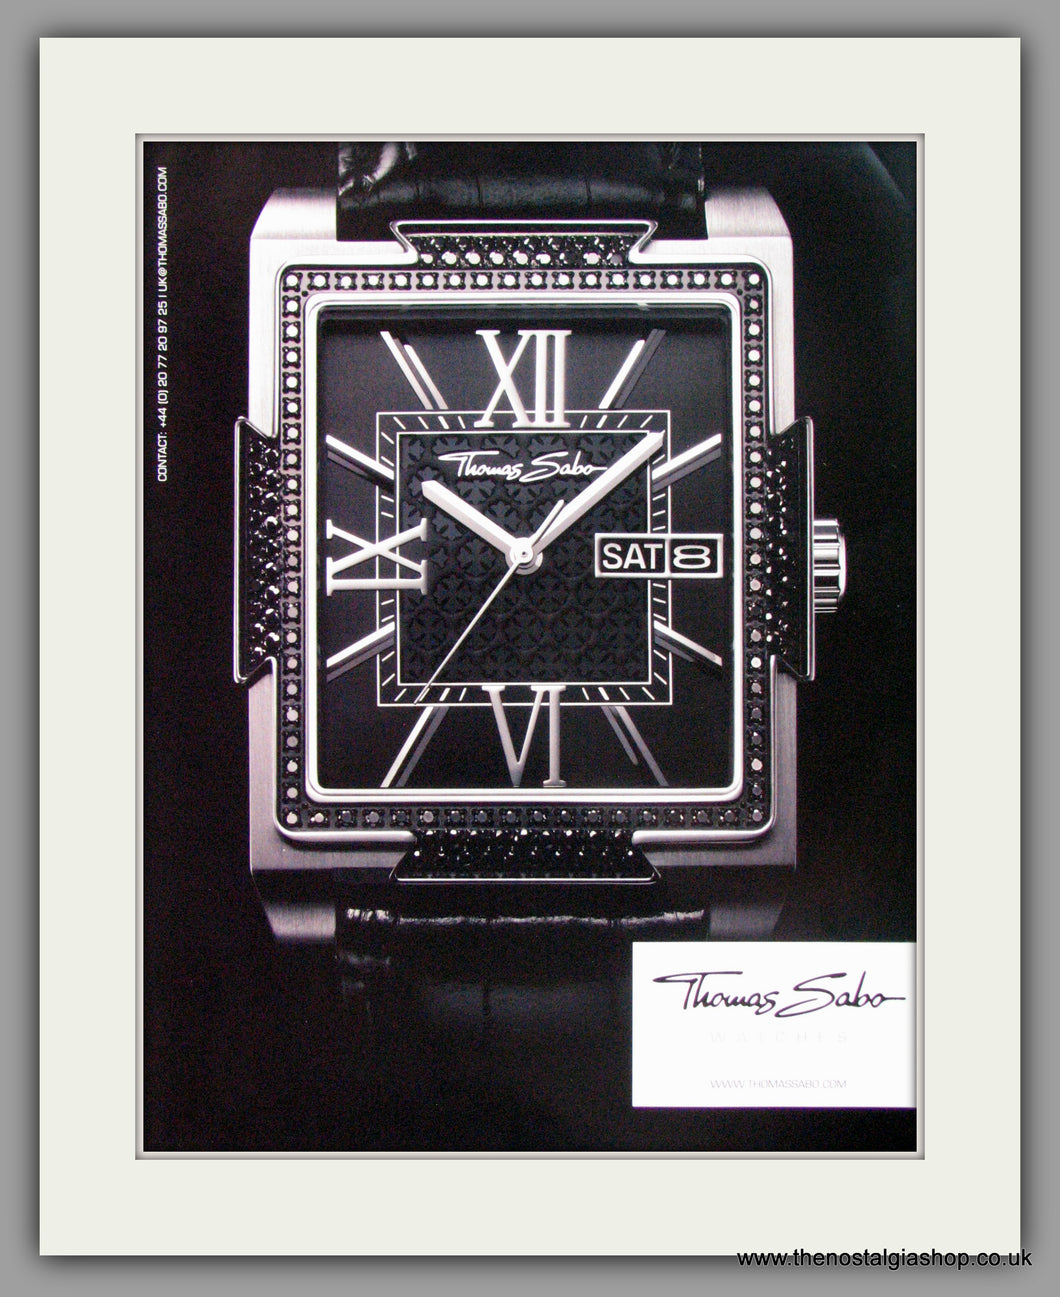 Thomas Sabo Watches. Original Advert 2010 (ref AD50122)